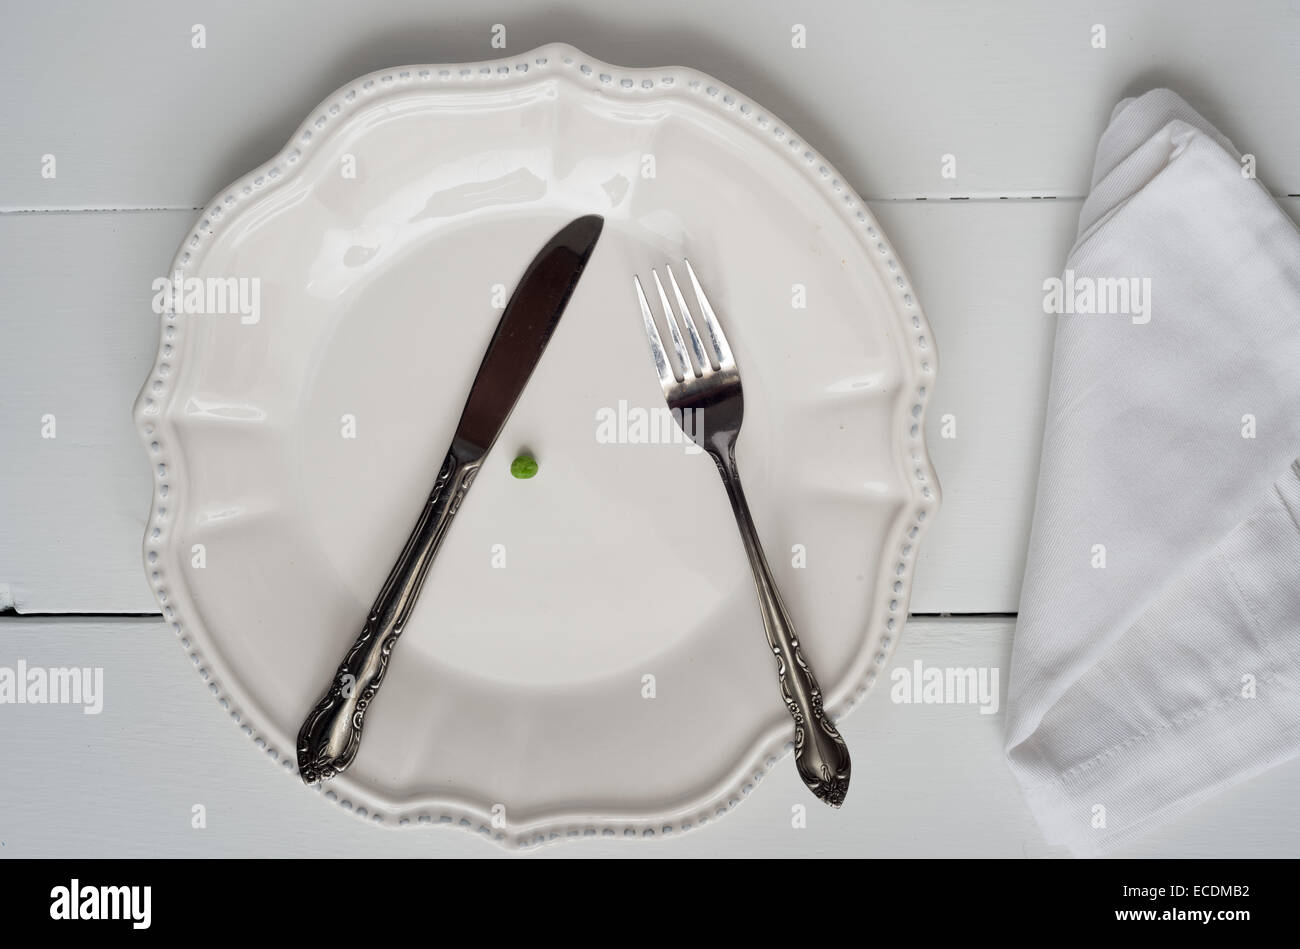 Weight loss new year's concept - single pea on a plate - Stock Image